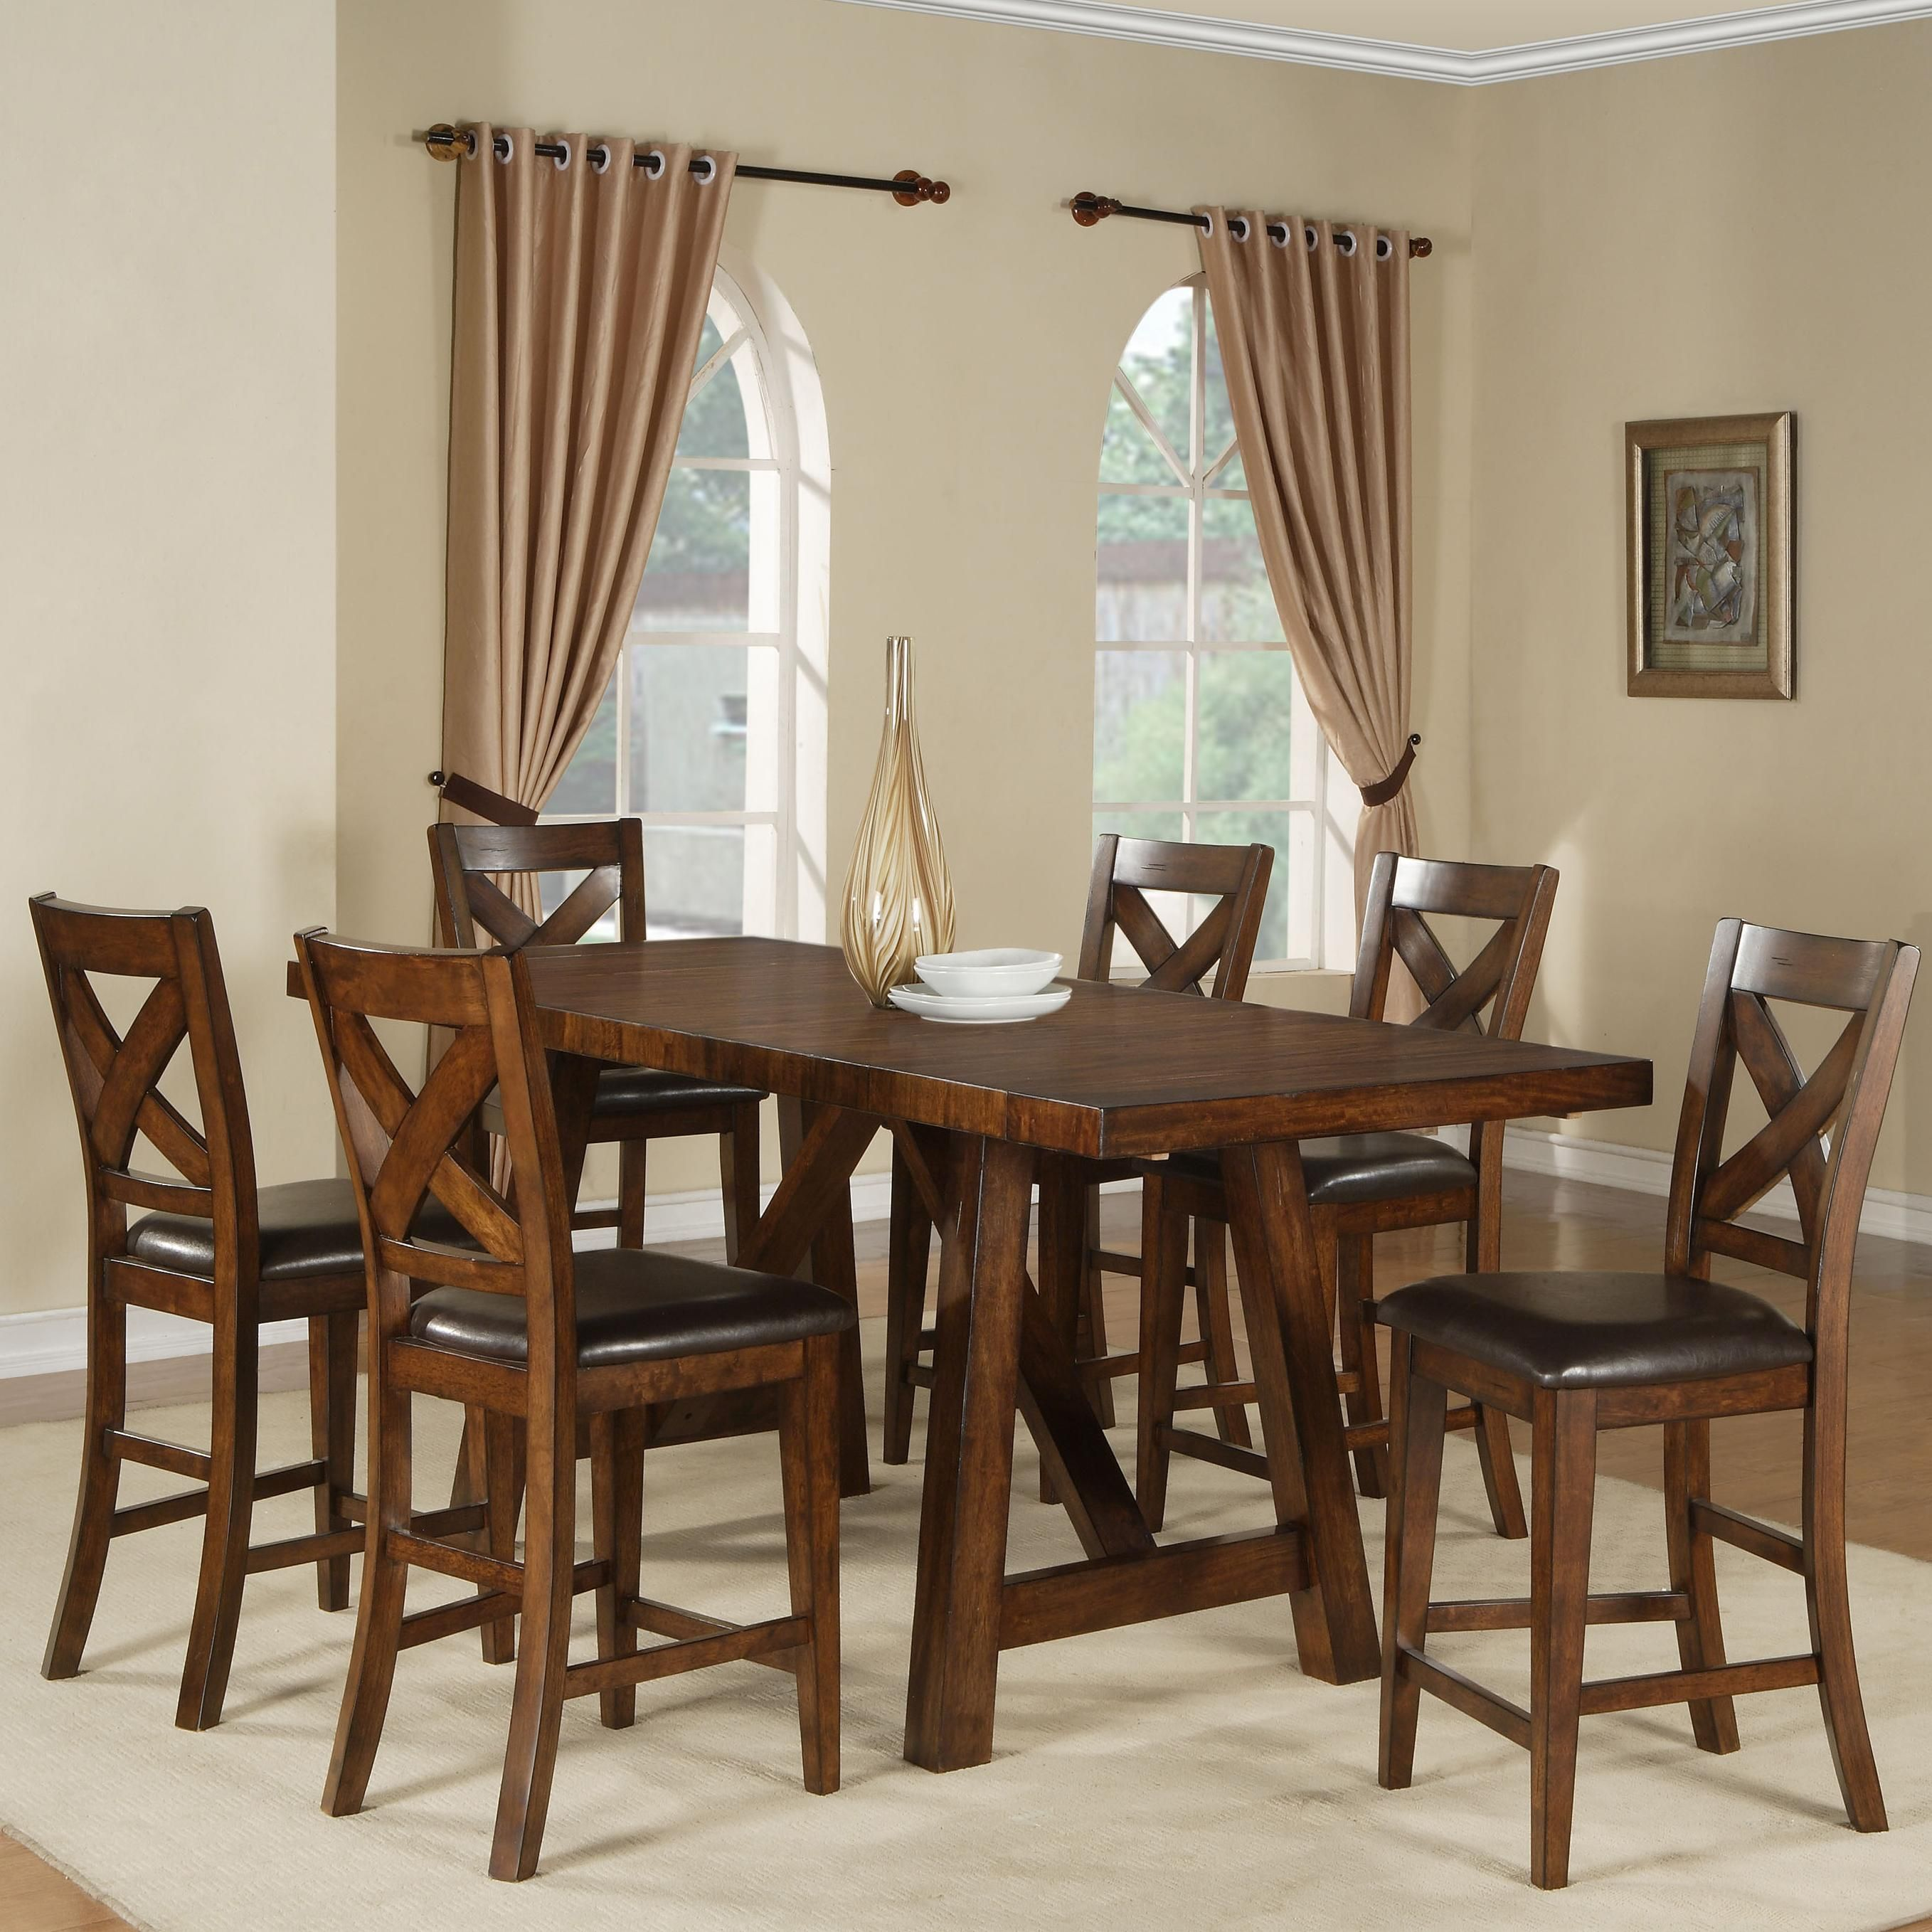 Exceptional Burnished Mango Burnished Mango Counter Table Set By Holland House